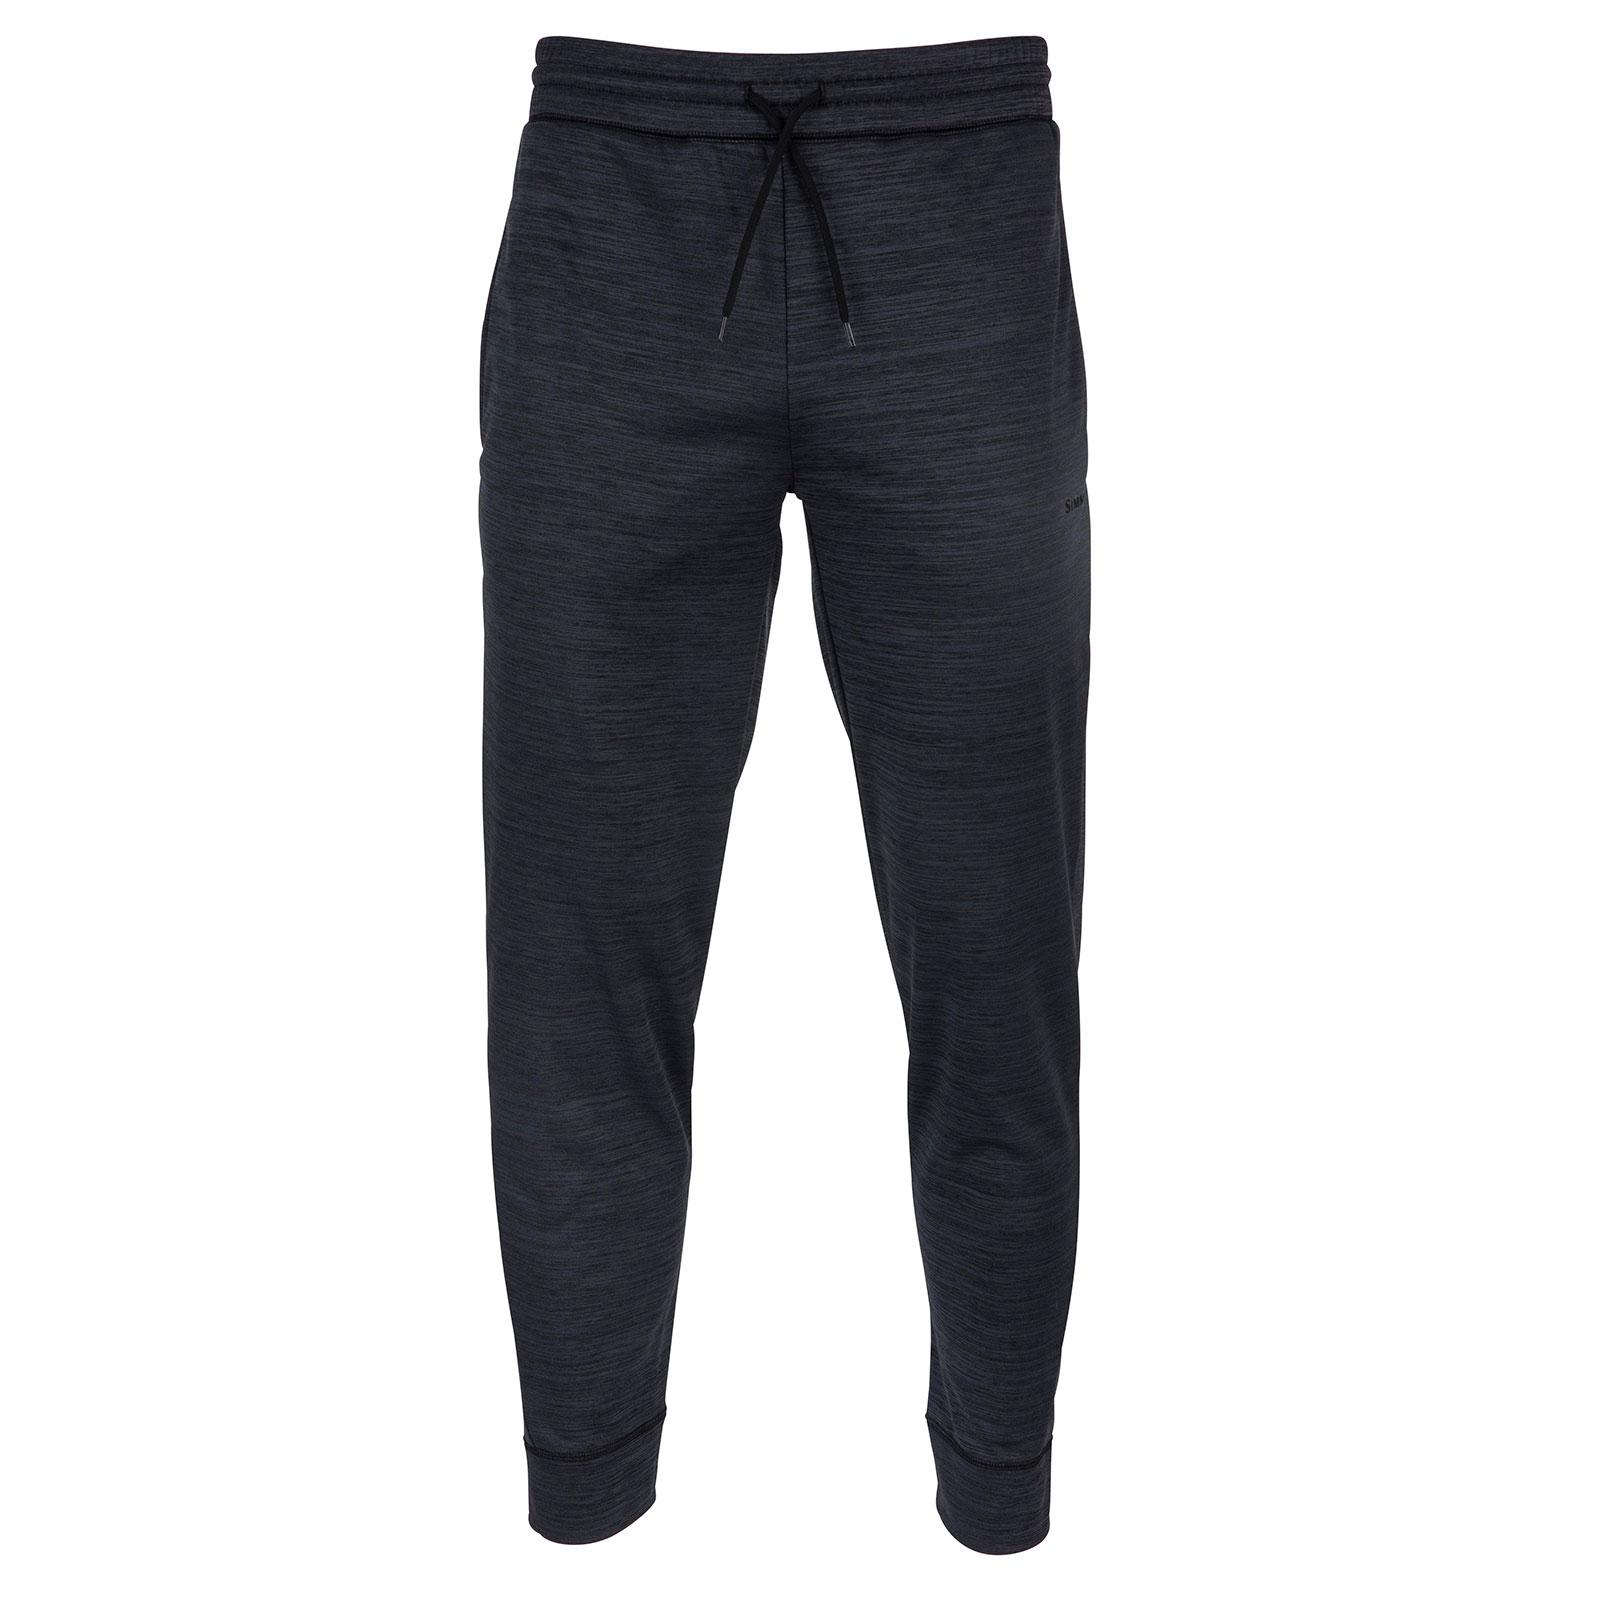 Simms Men's Challenger Sweatpants